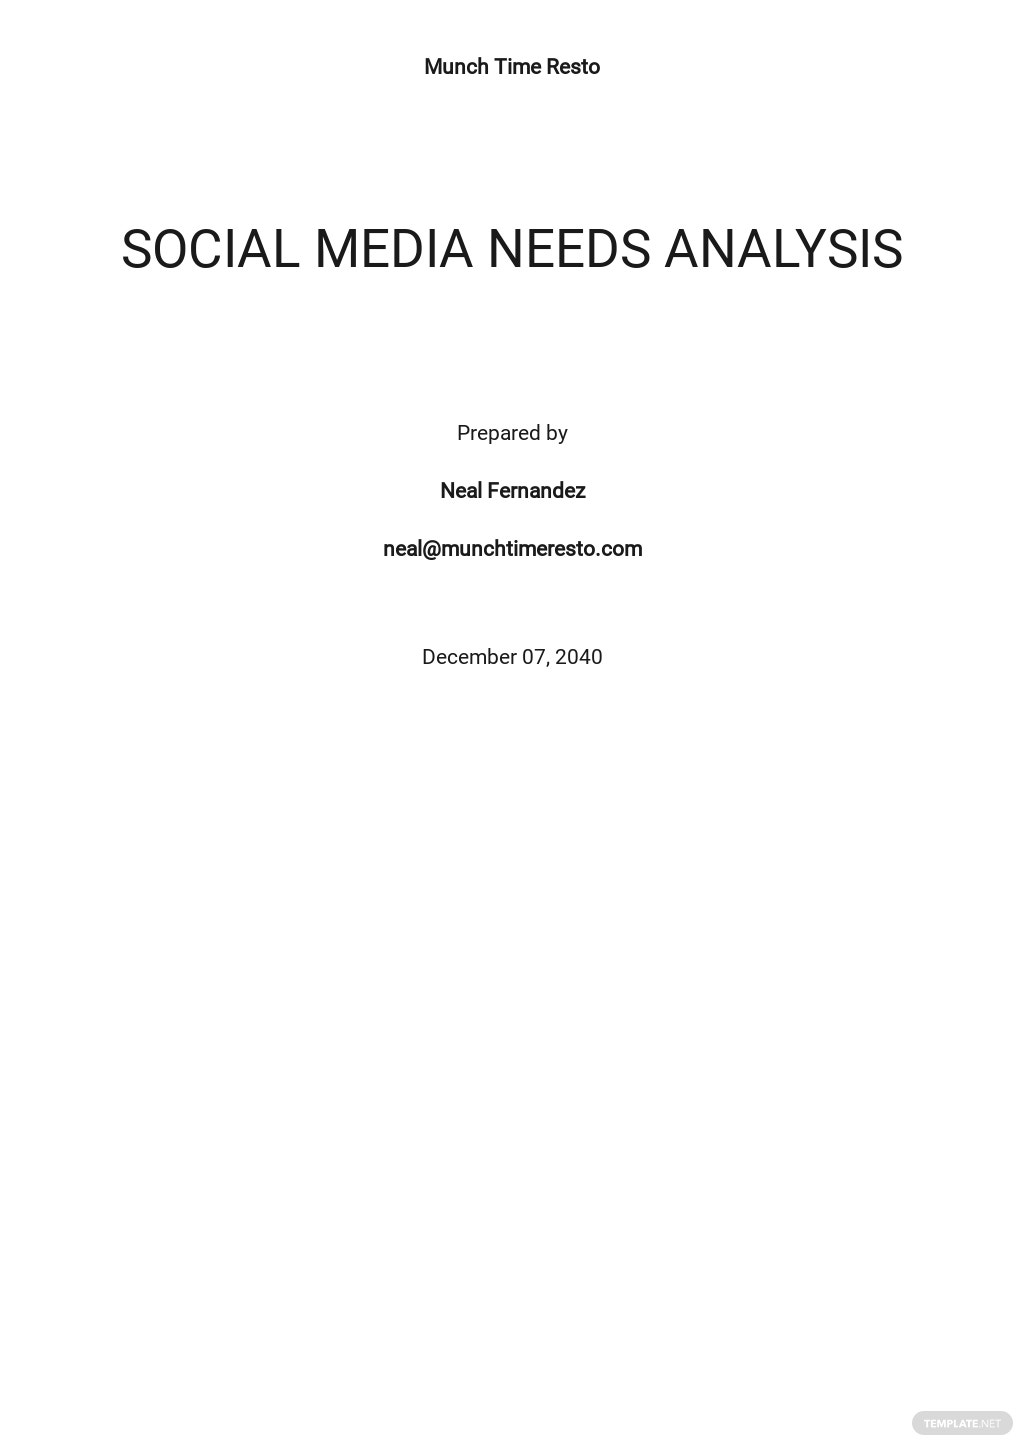 Social Media Needs Analysis Template [Free PDF] - Google Docs, Word, Apple Pages